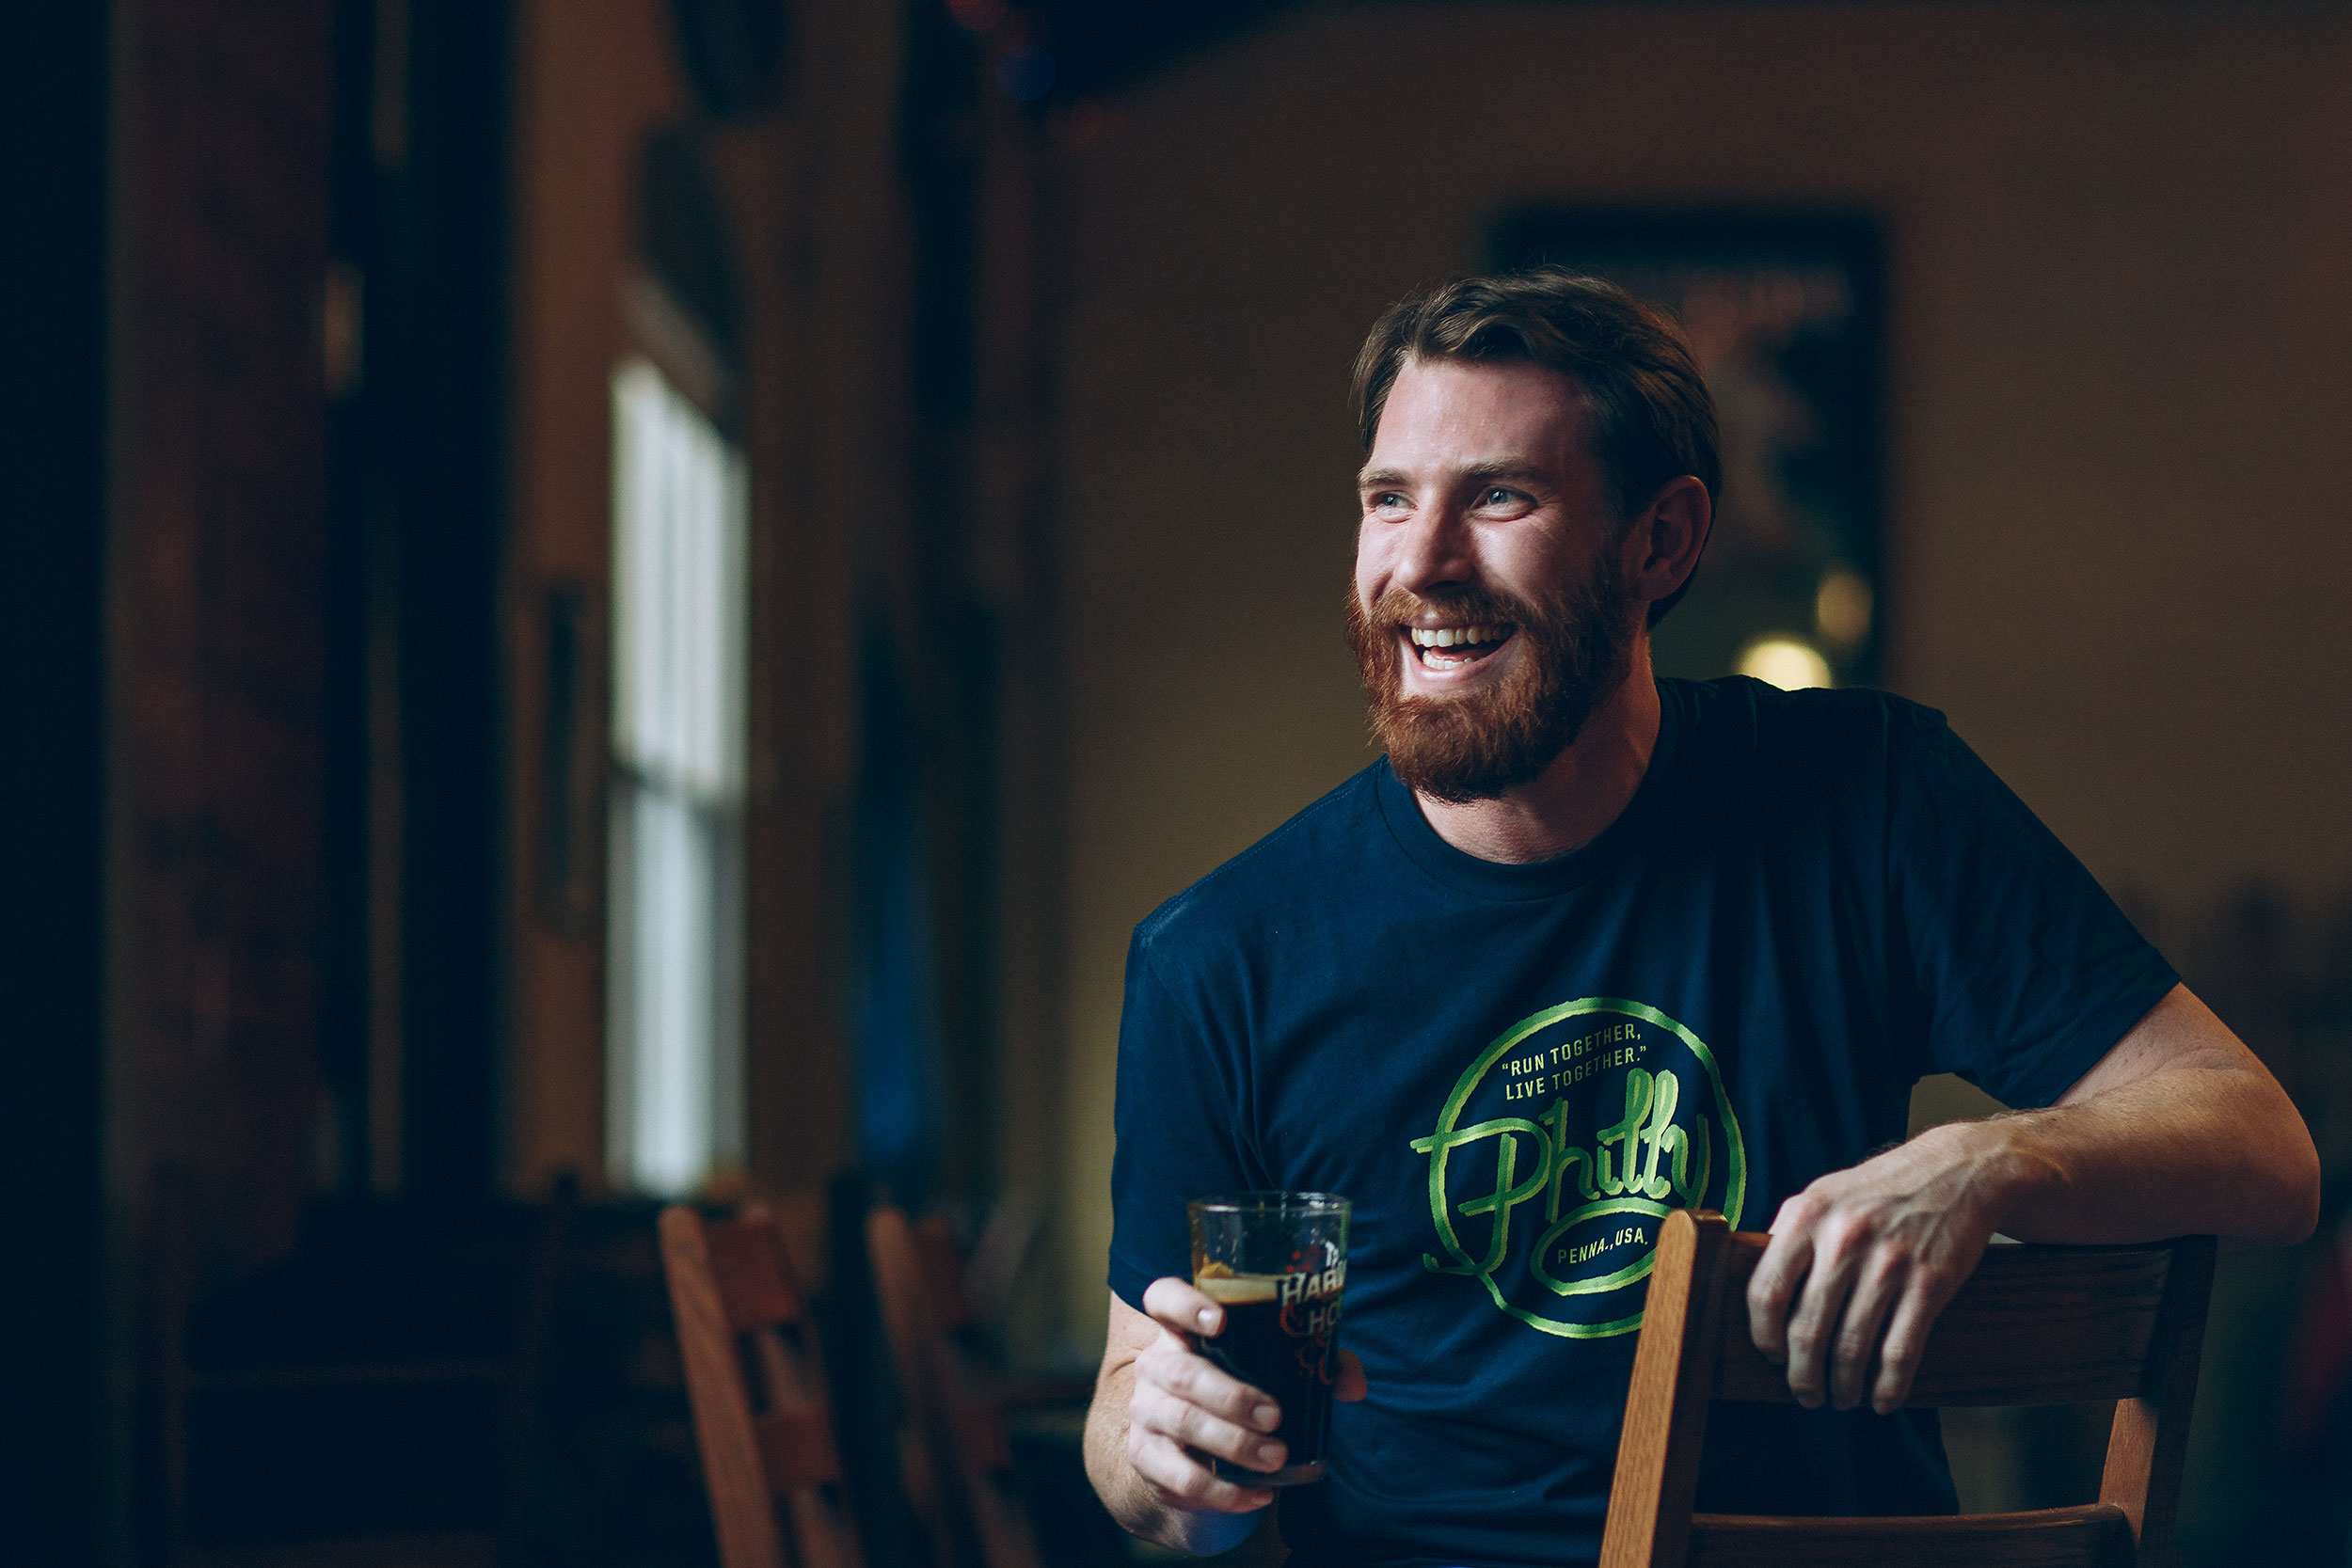 lifestyle_portrait_beer_runner_philadelphia-4843